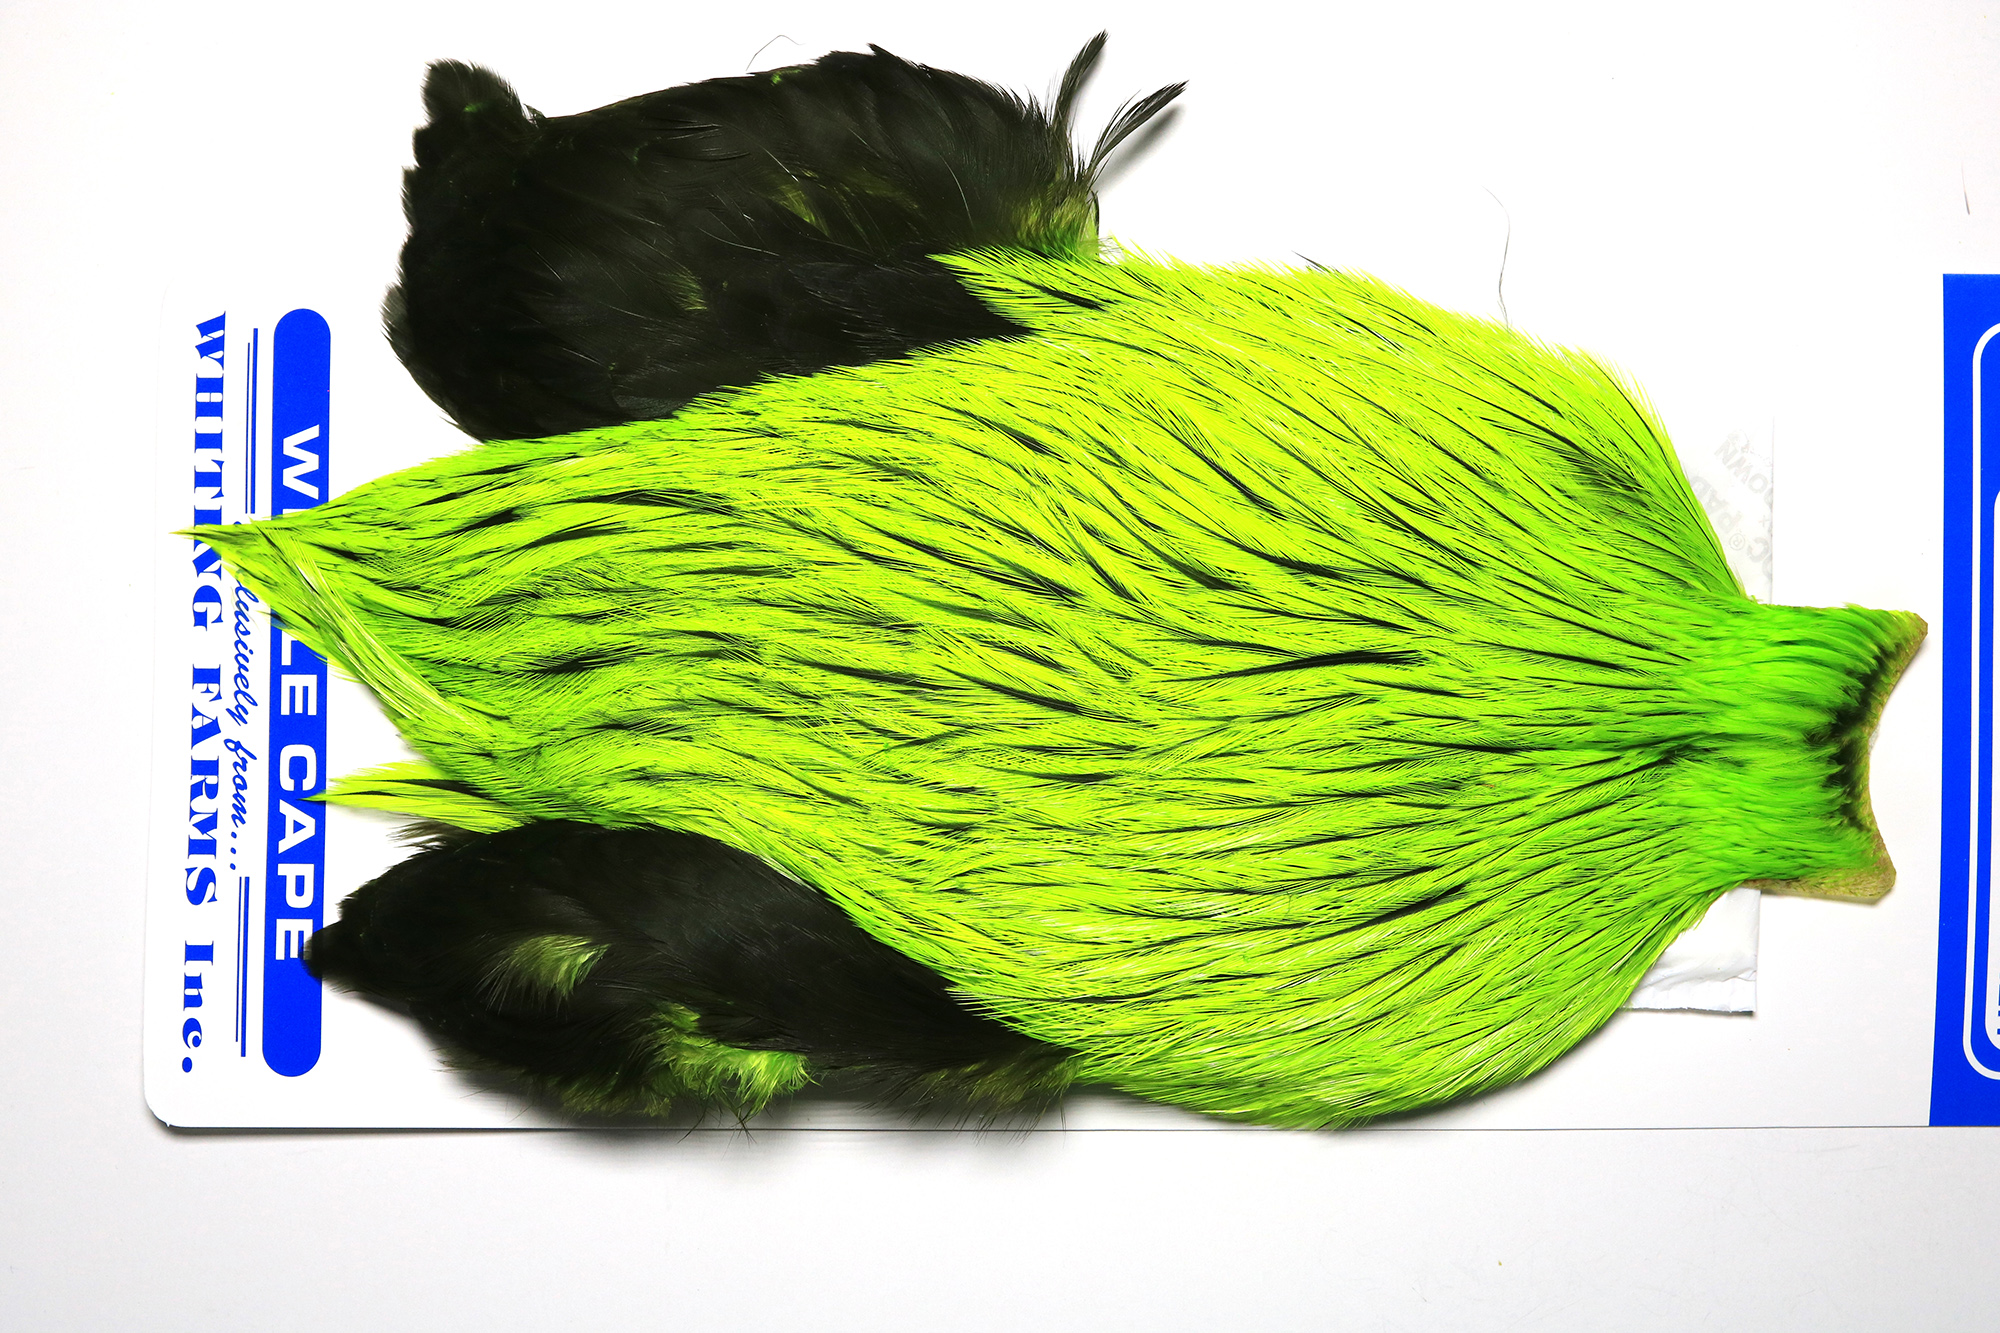 FWSC-4625 Whiting Freshwater Streamer Cape Badger dyed Flour. Green Chartr.